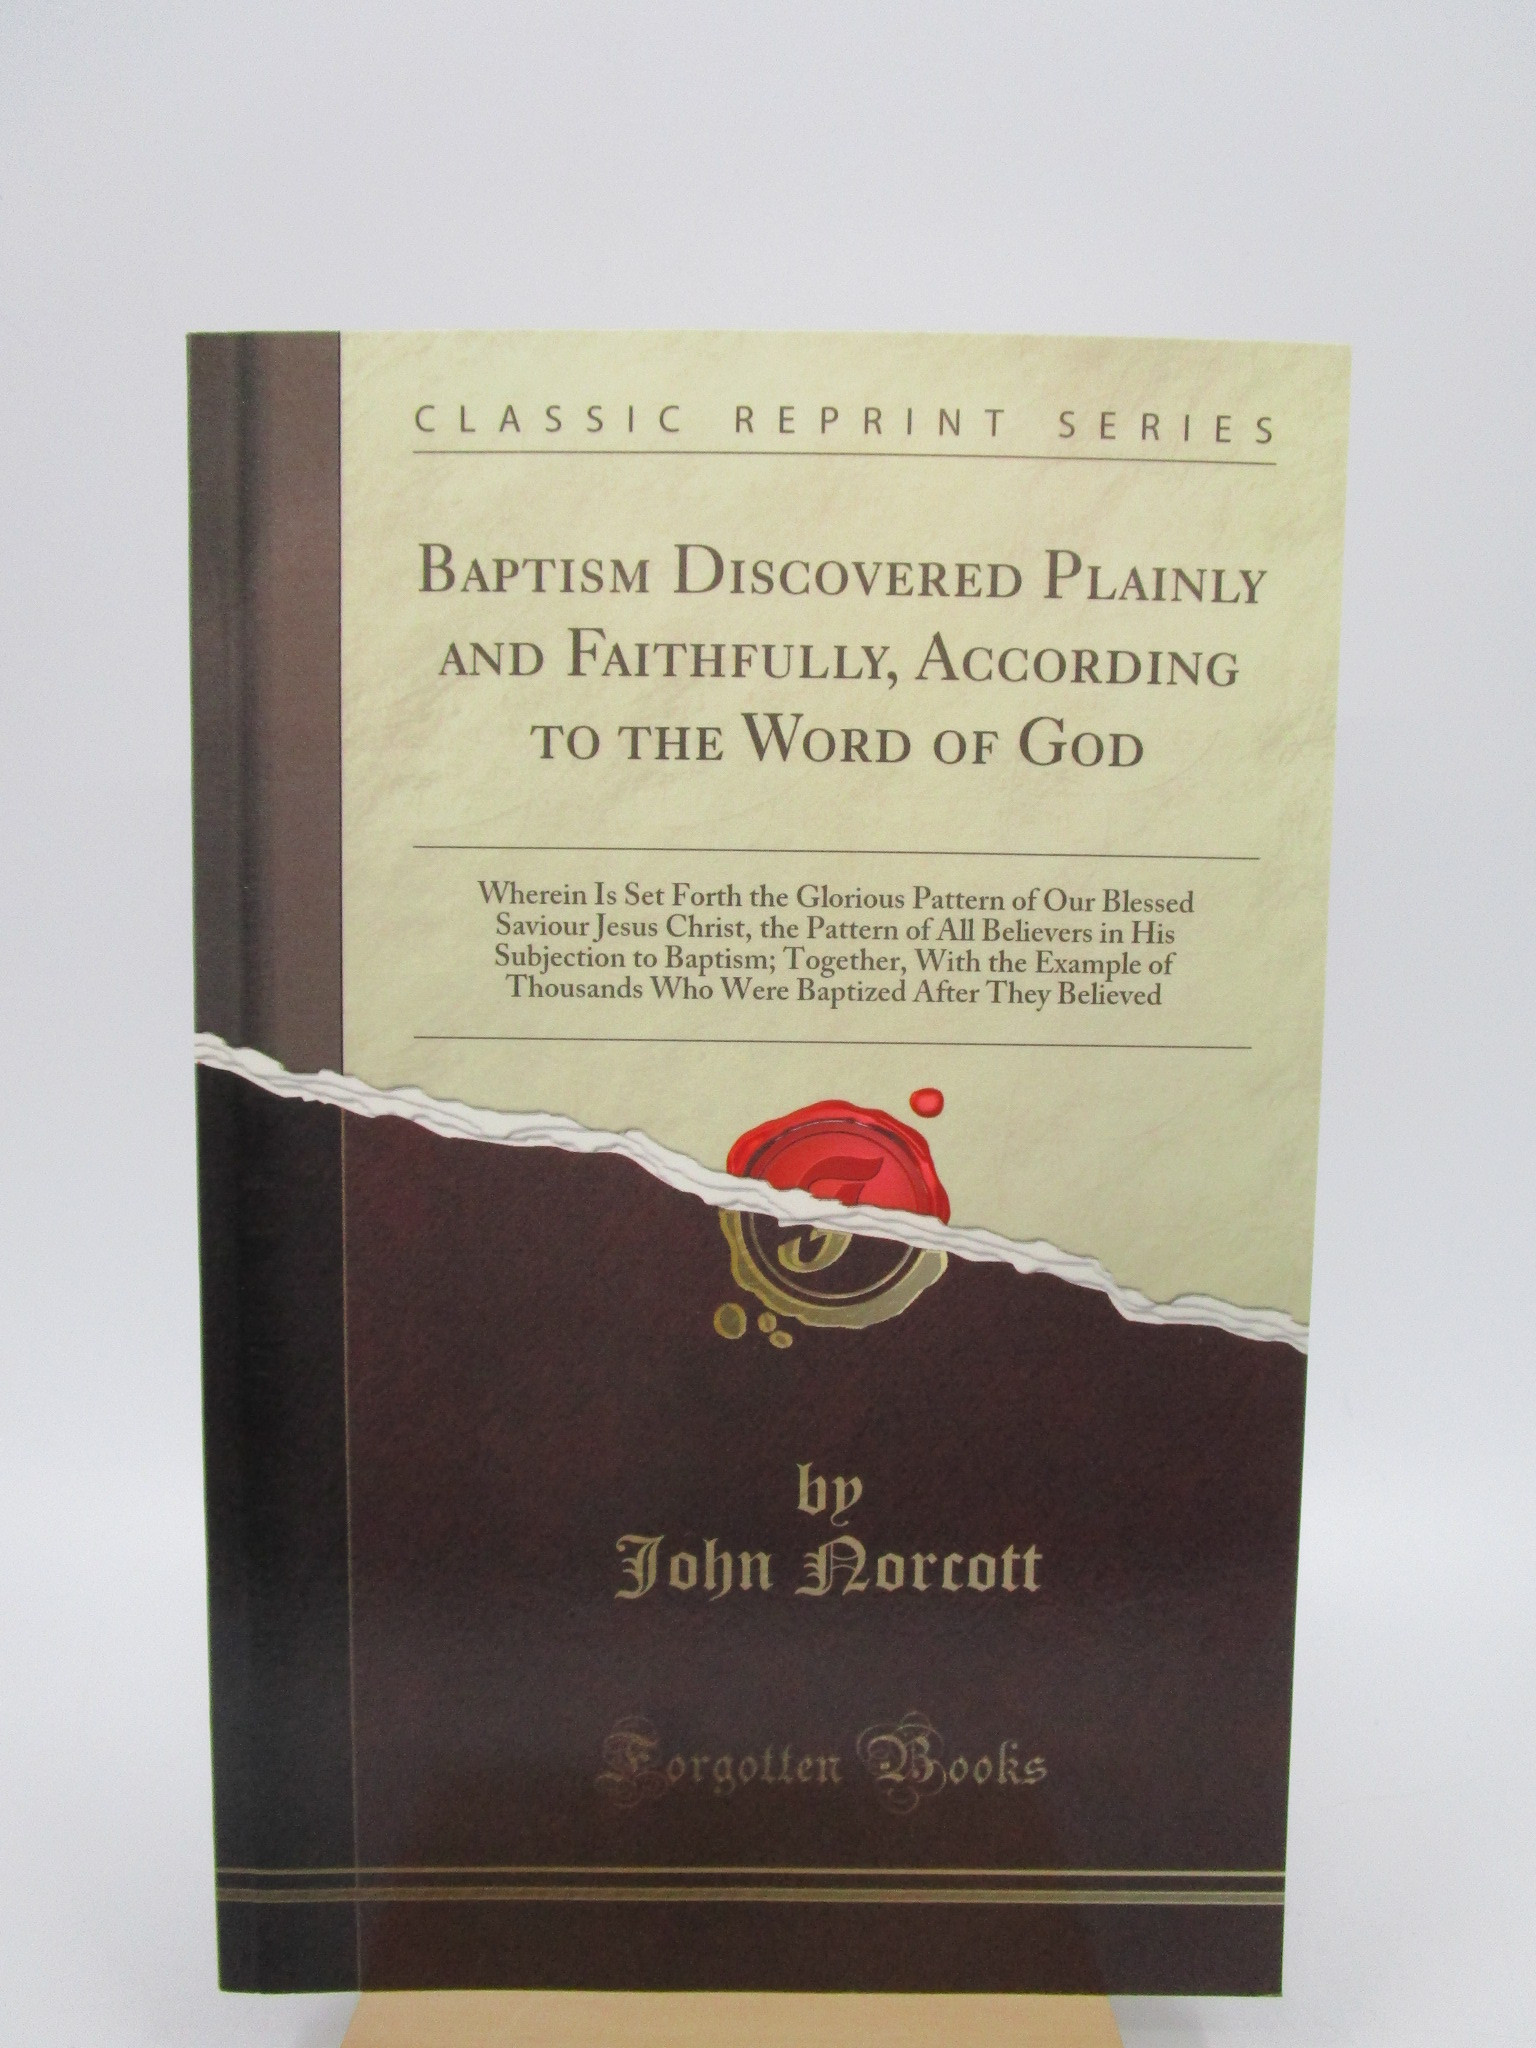 Image for Baptism Discovered Plainly and Faithfully, According to the Word of God: Wherein Is Set Forth the Glorious Pattern of Our Blessed Saviour Jesus Christ, the Pattern of All Believers in His Subjection to Baptism; Together, With the Example of Thousands Who Were Baptized After They Believed (Classic Reprint)